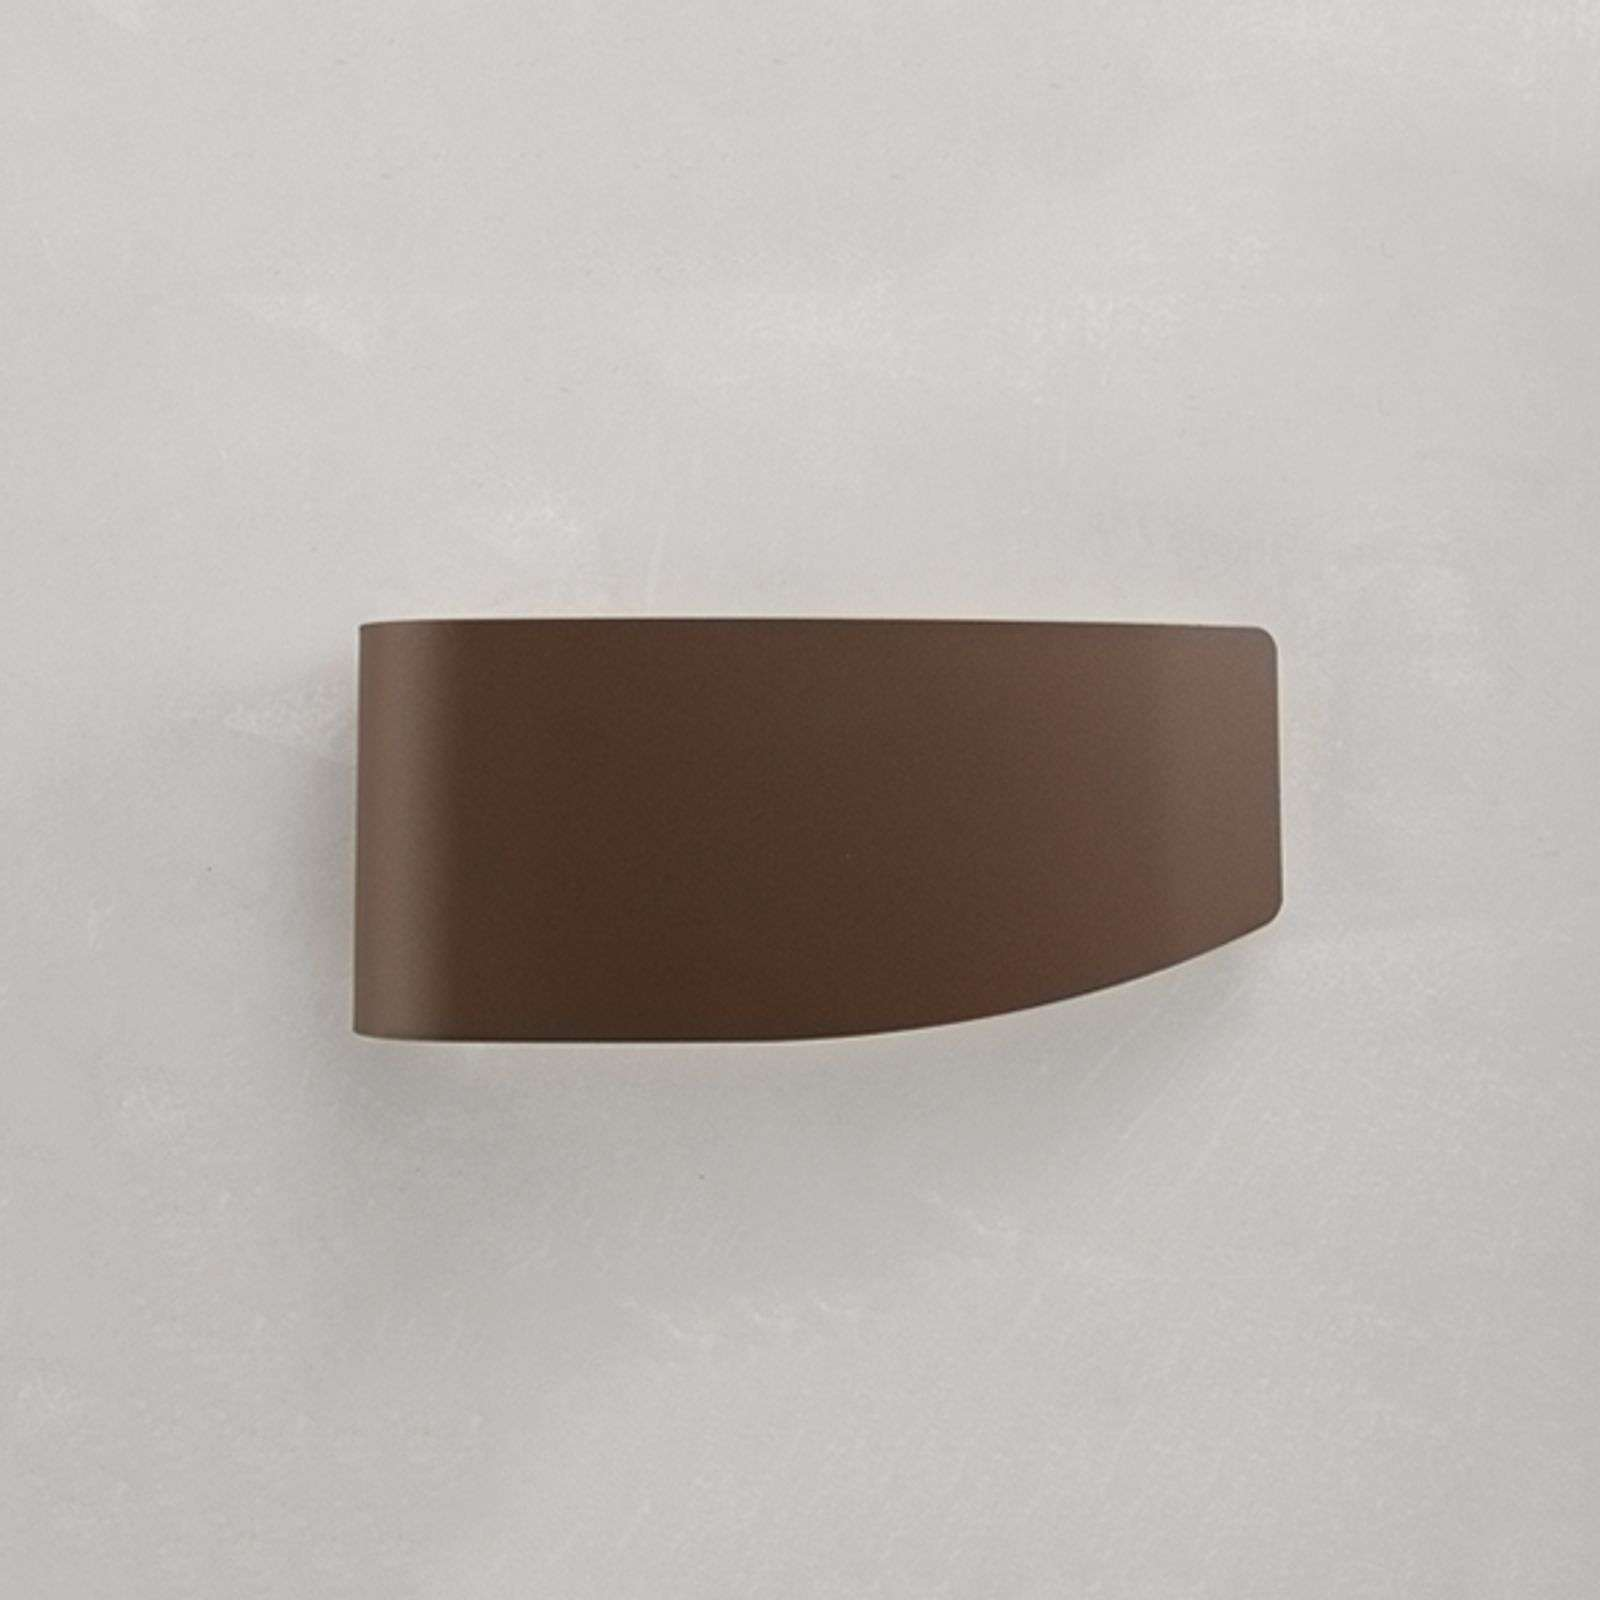 Lámpara de pared Virgola diseño decorativo, marrón